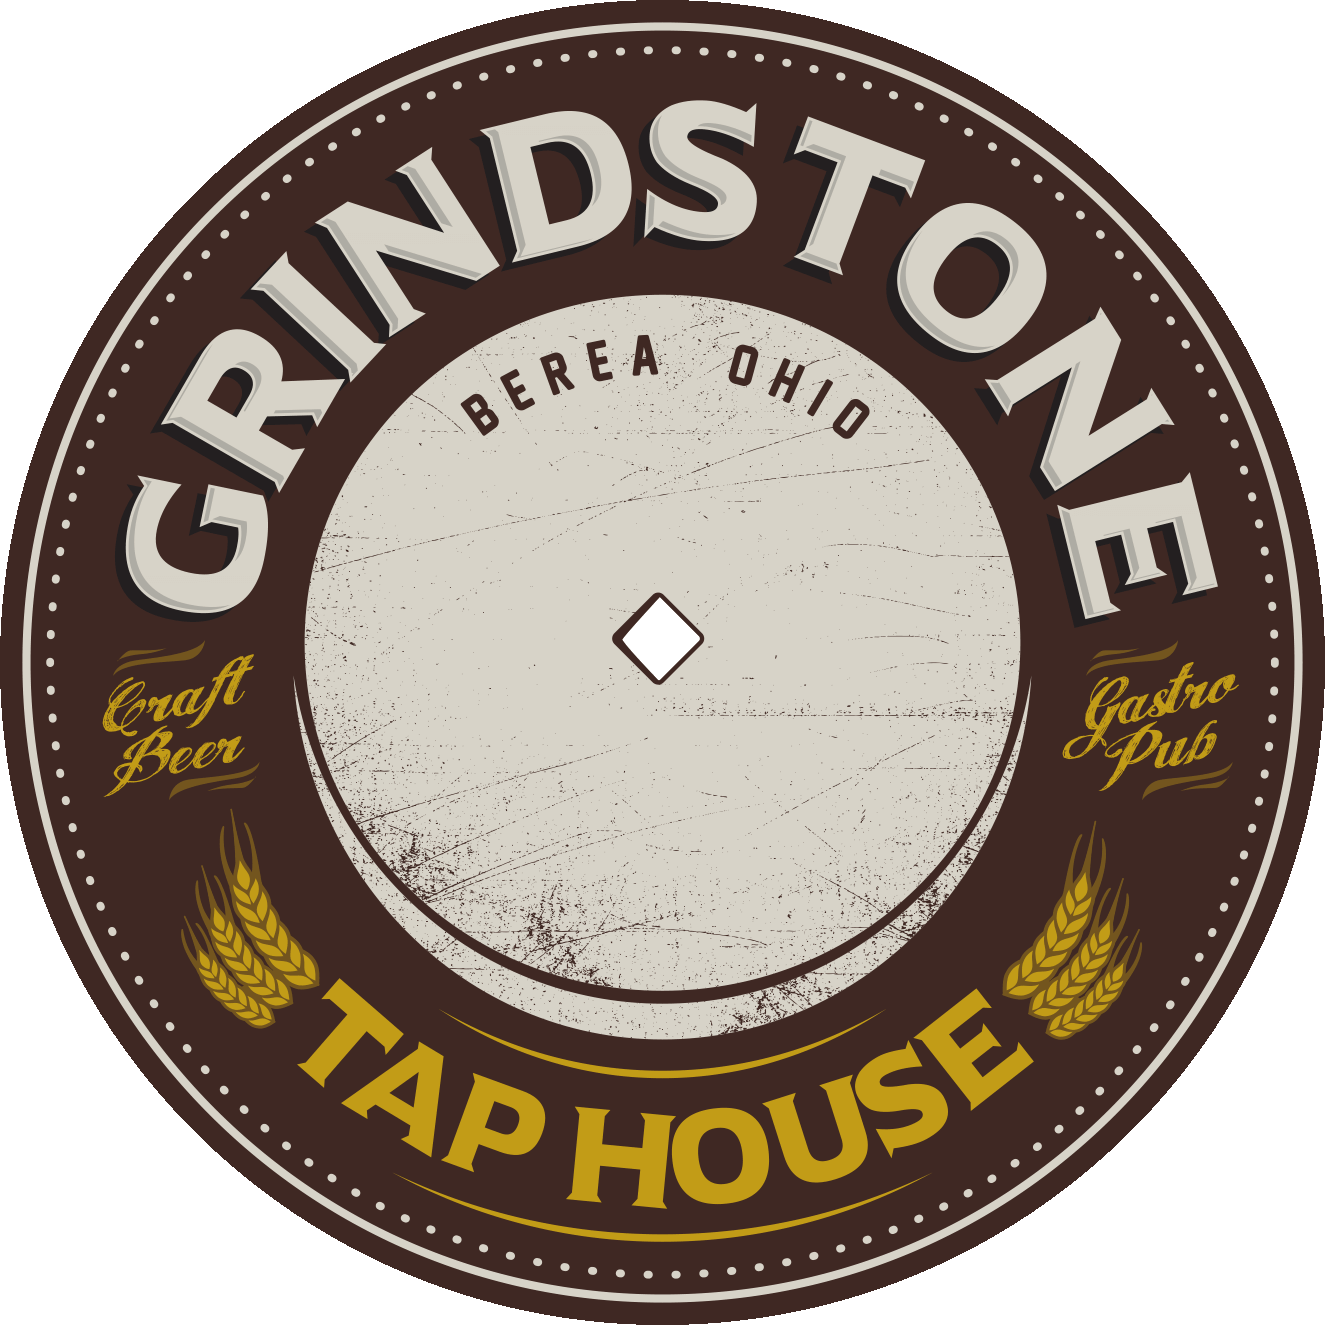 The Grindstone Tap House